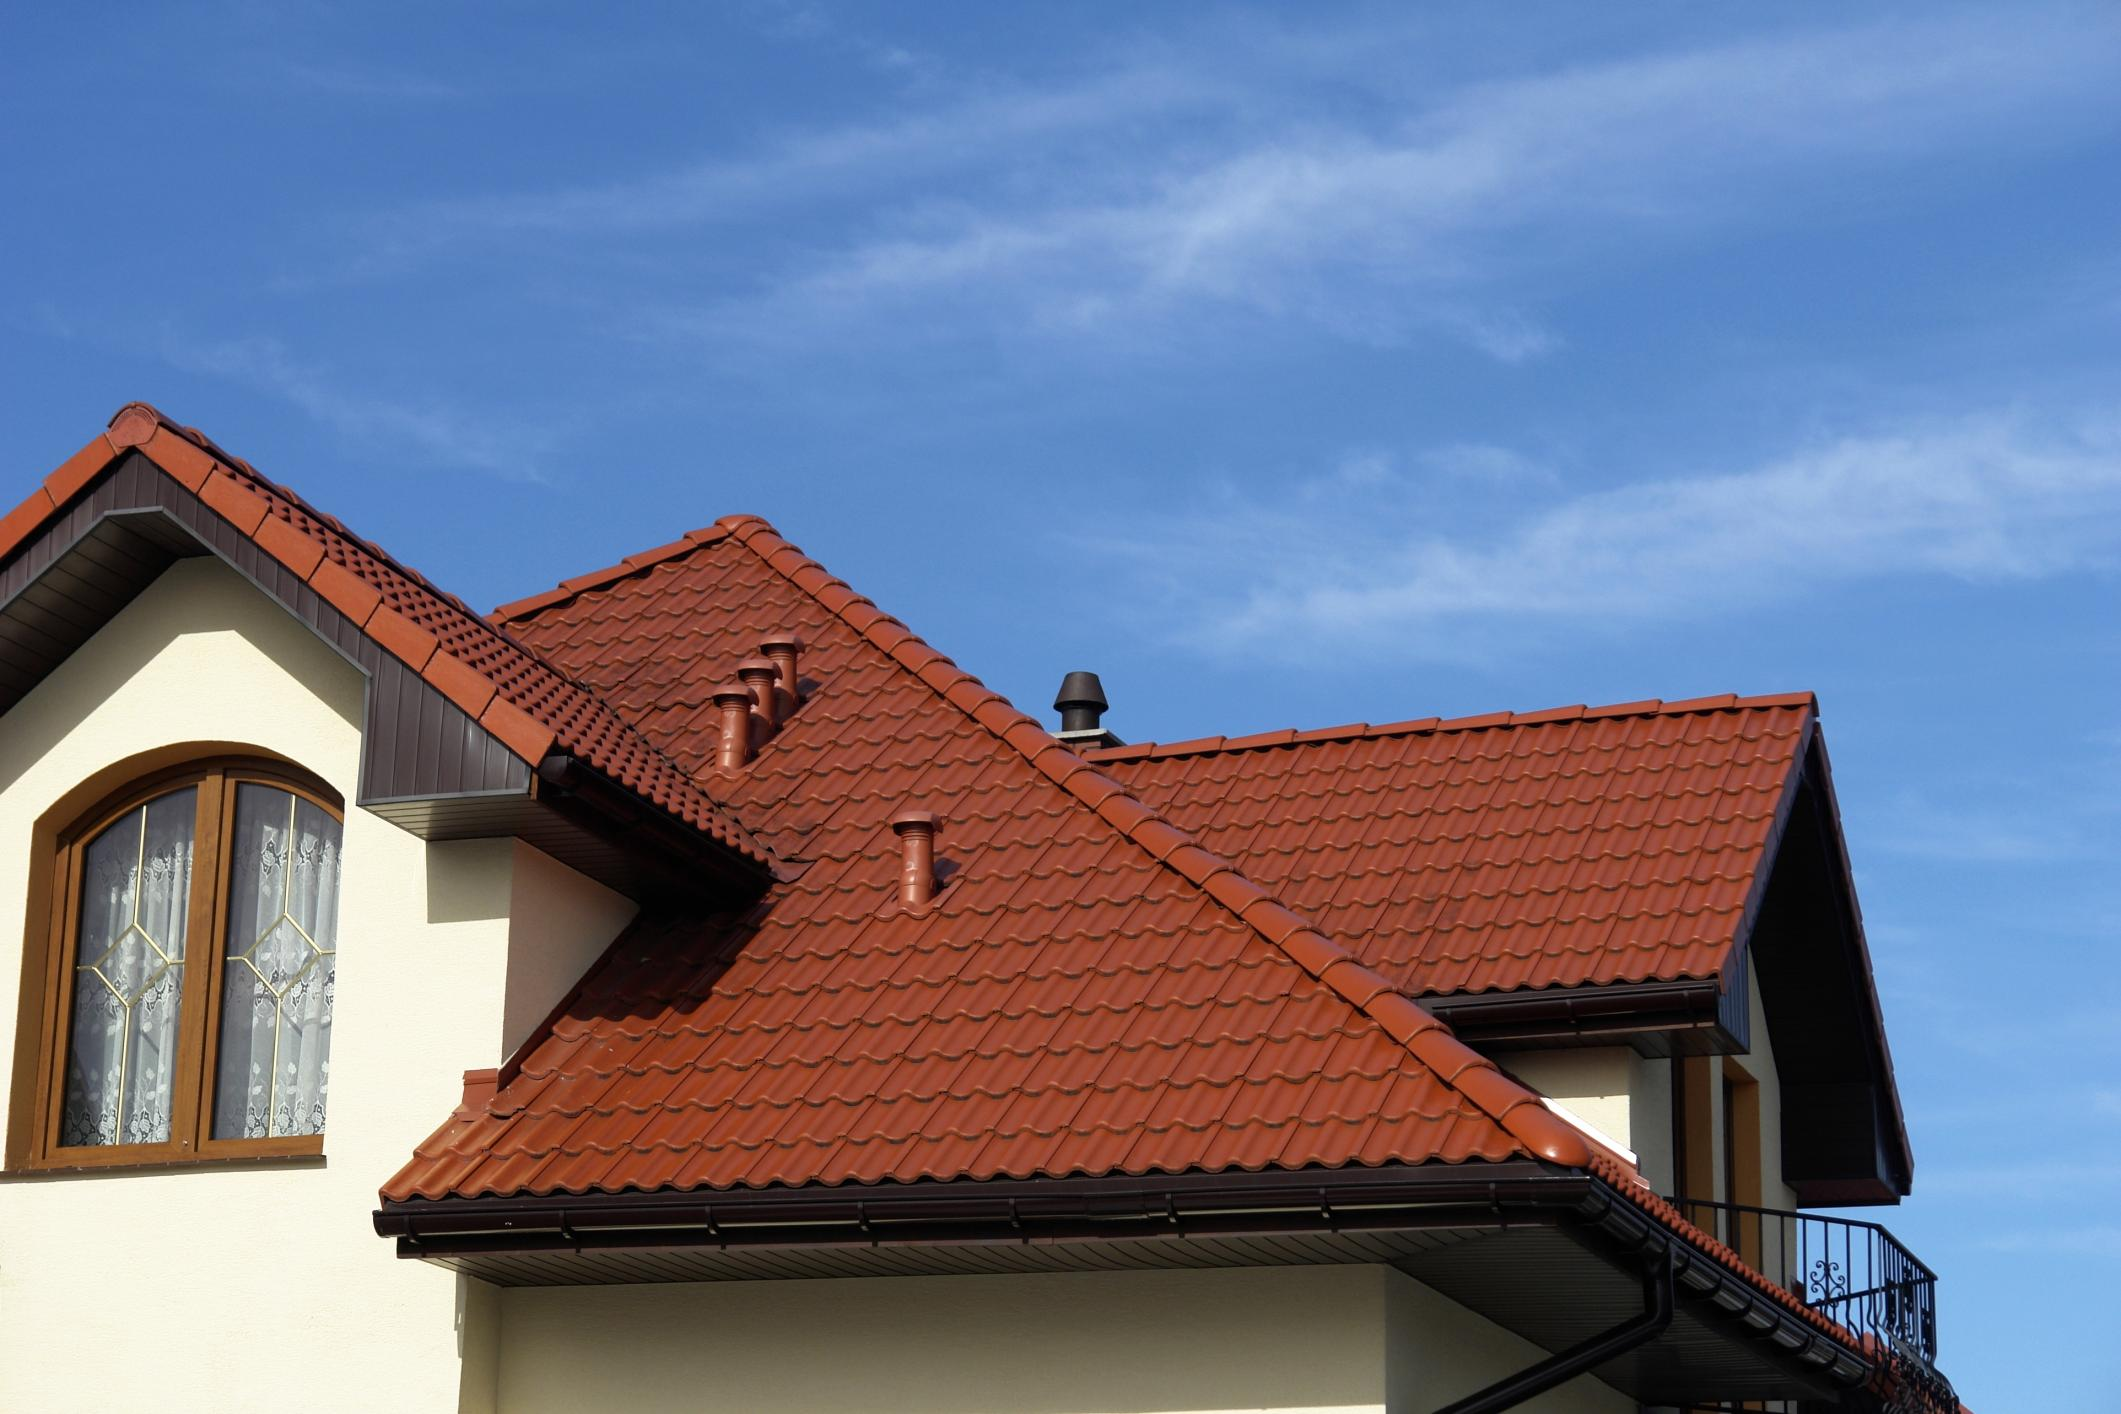 Home with brown roof and blue sky